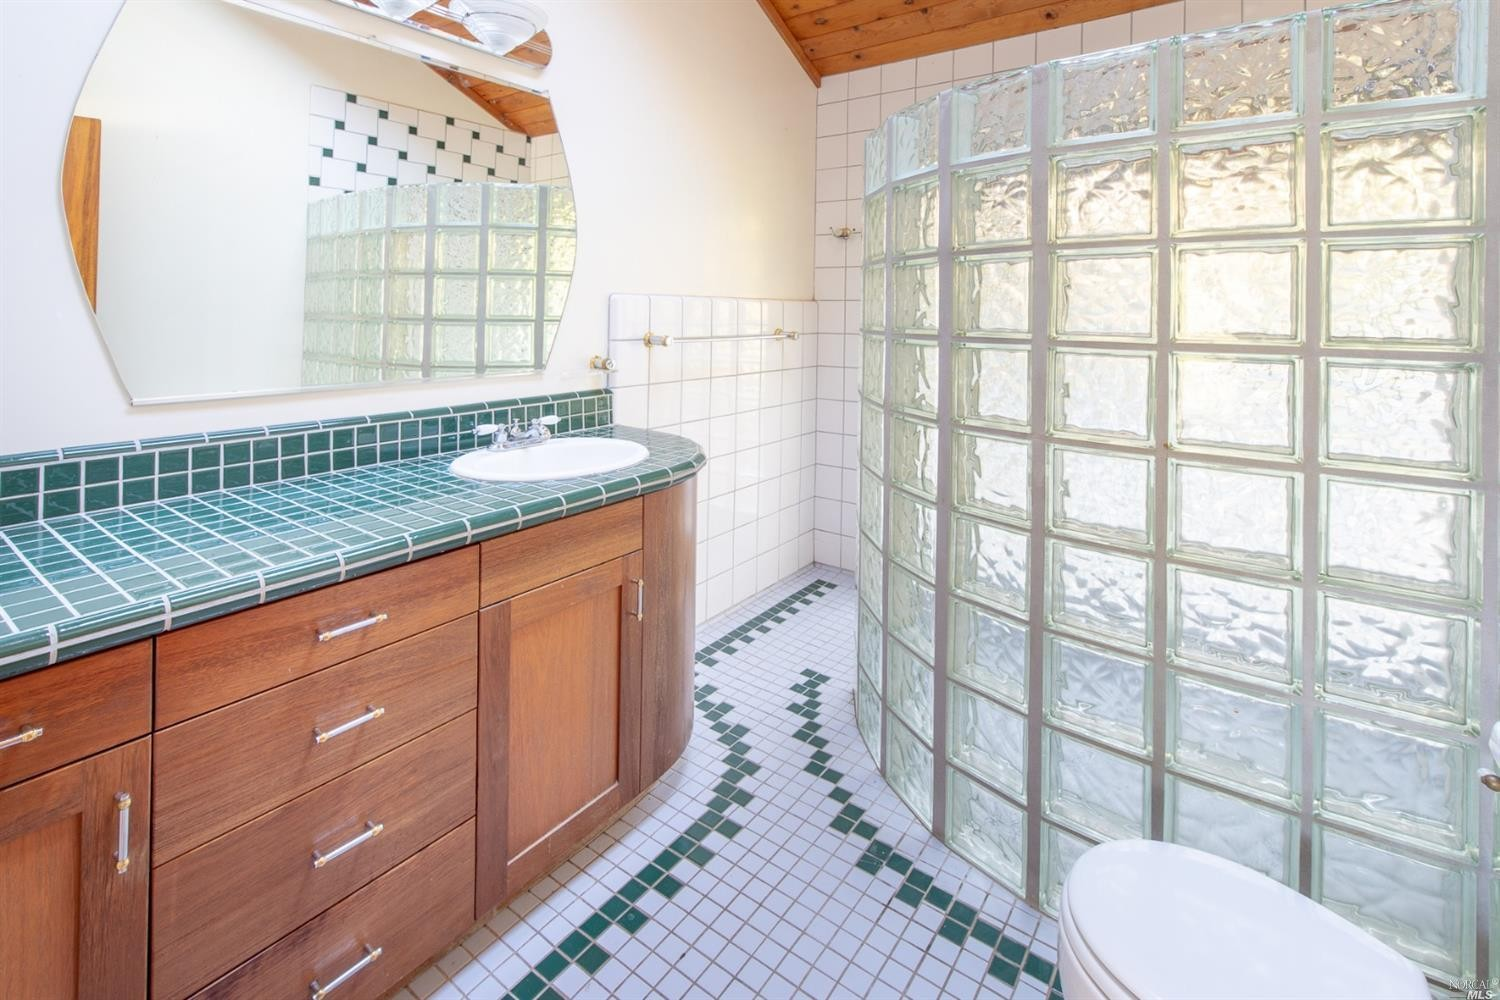 beautiful tile in a bathroom in the family home for sale, Philo, CA